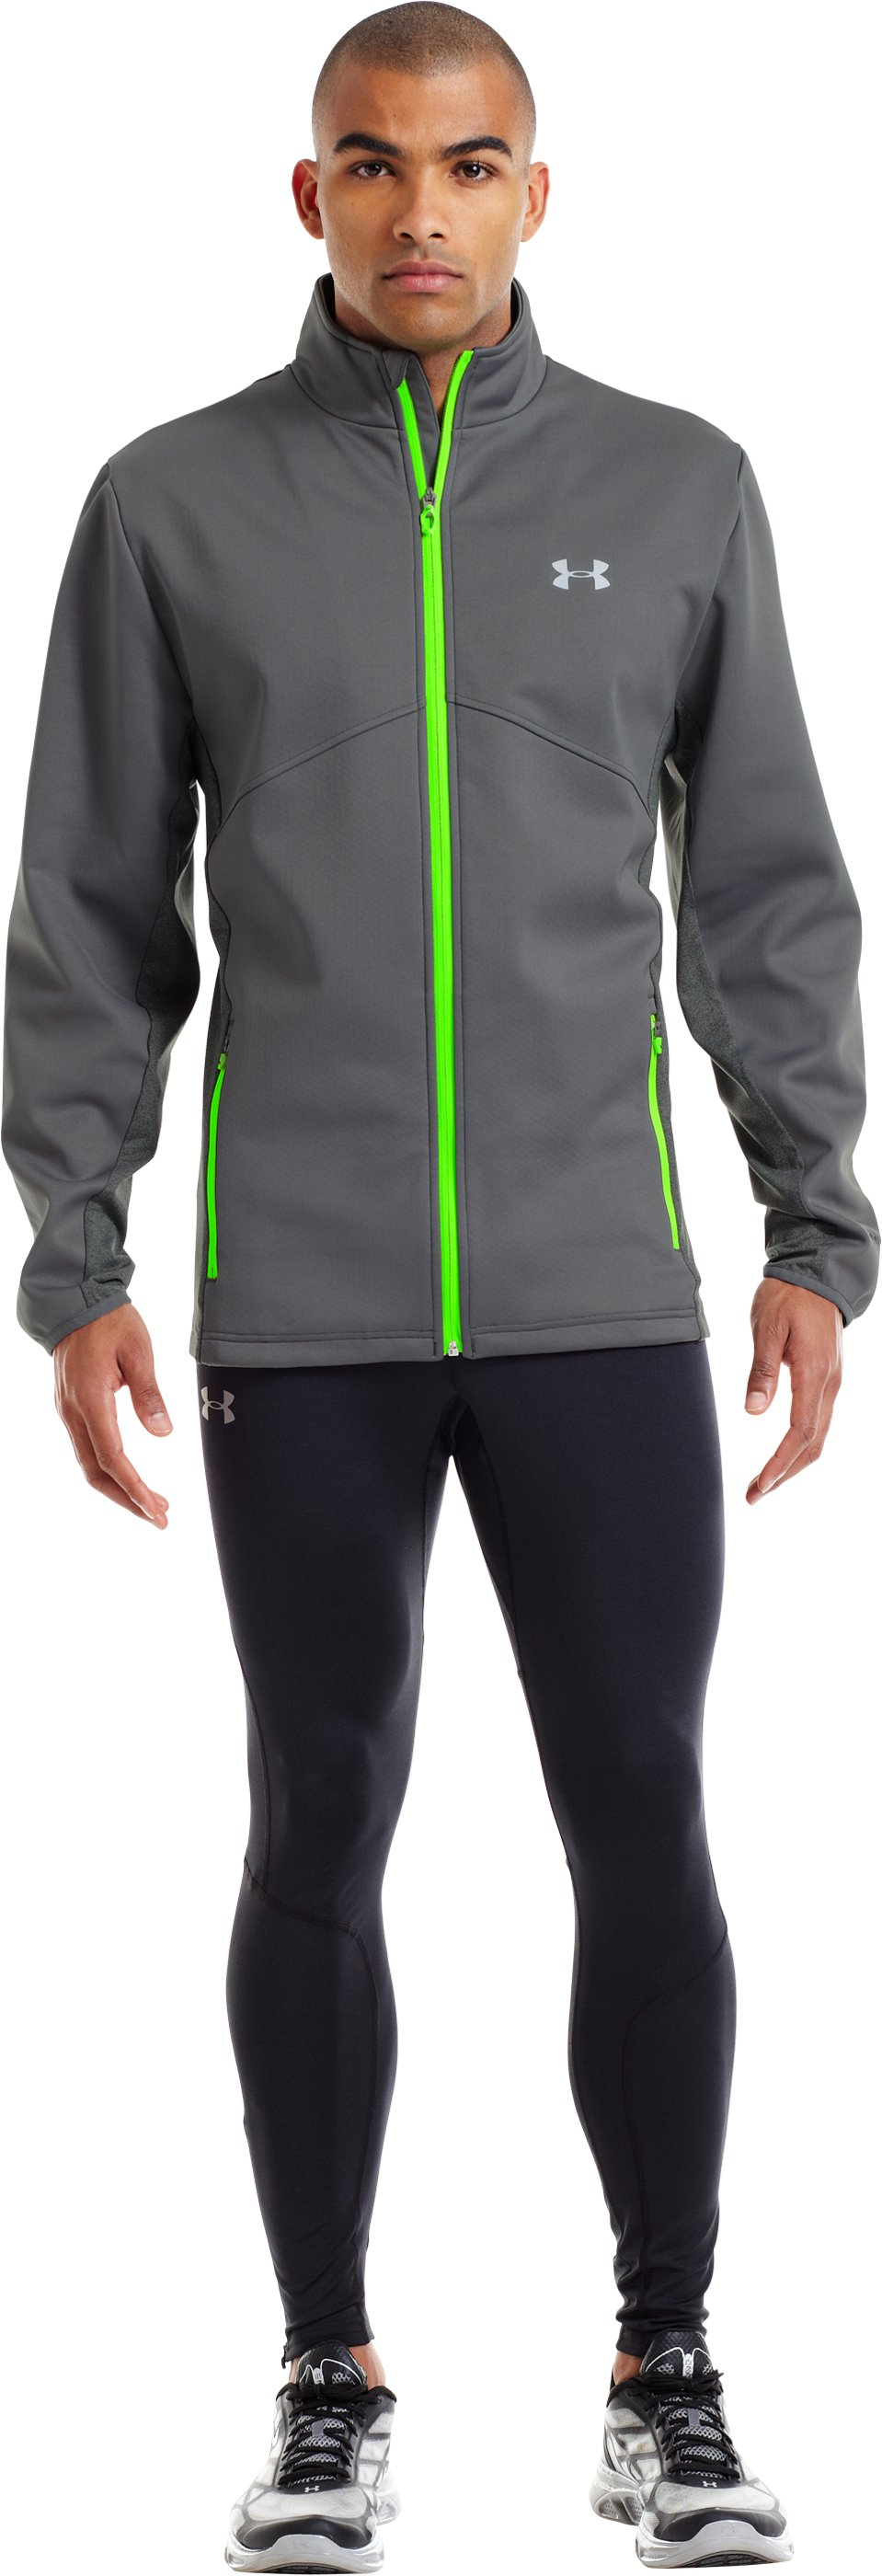 Men's ColdGear® Infrared Storm Run Jacket, Graphite, zoomed image